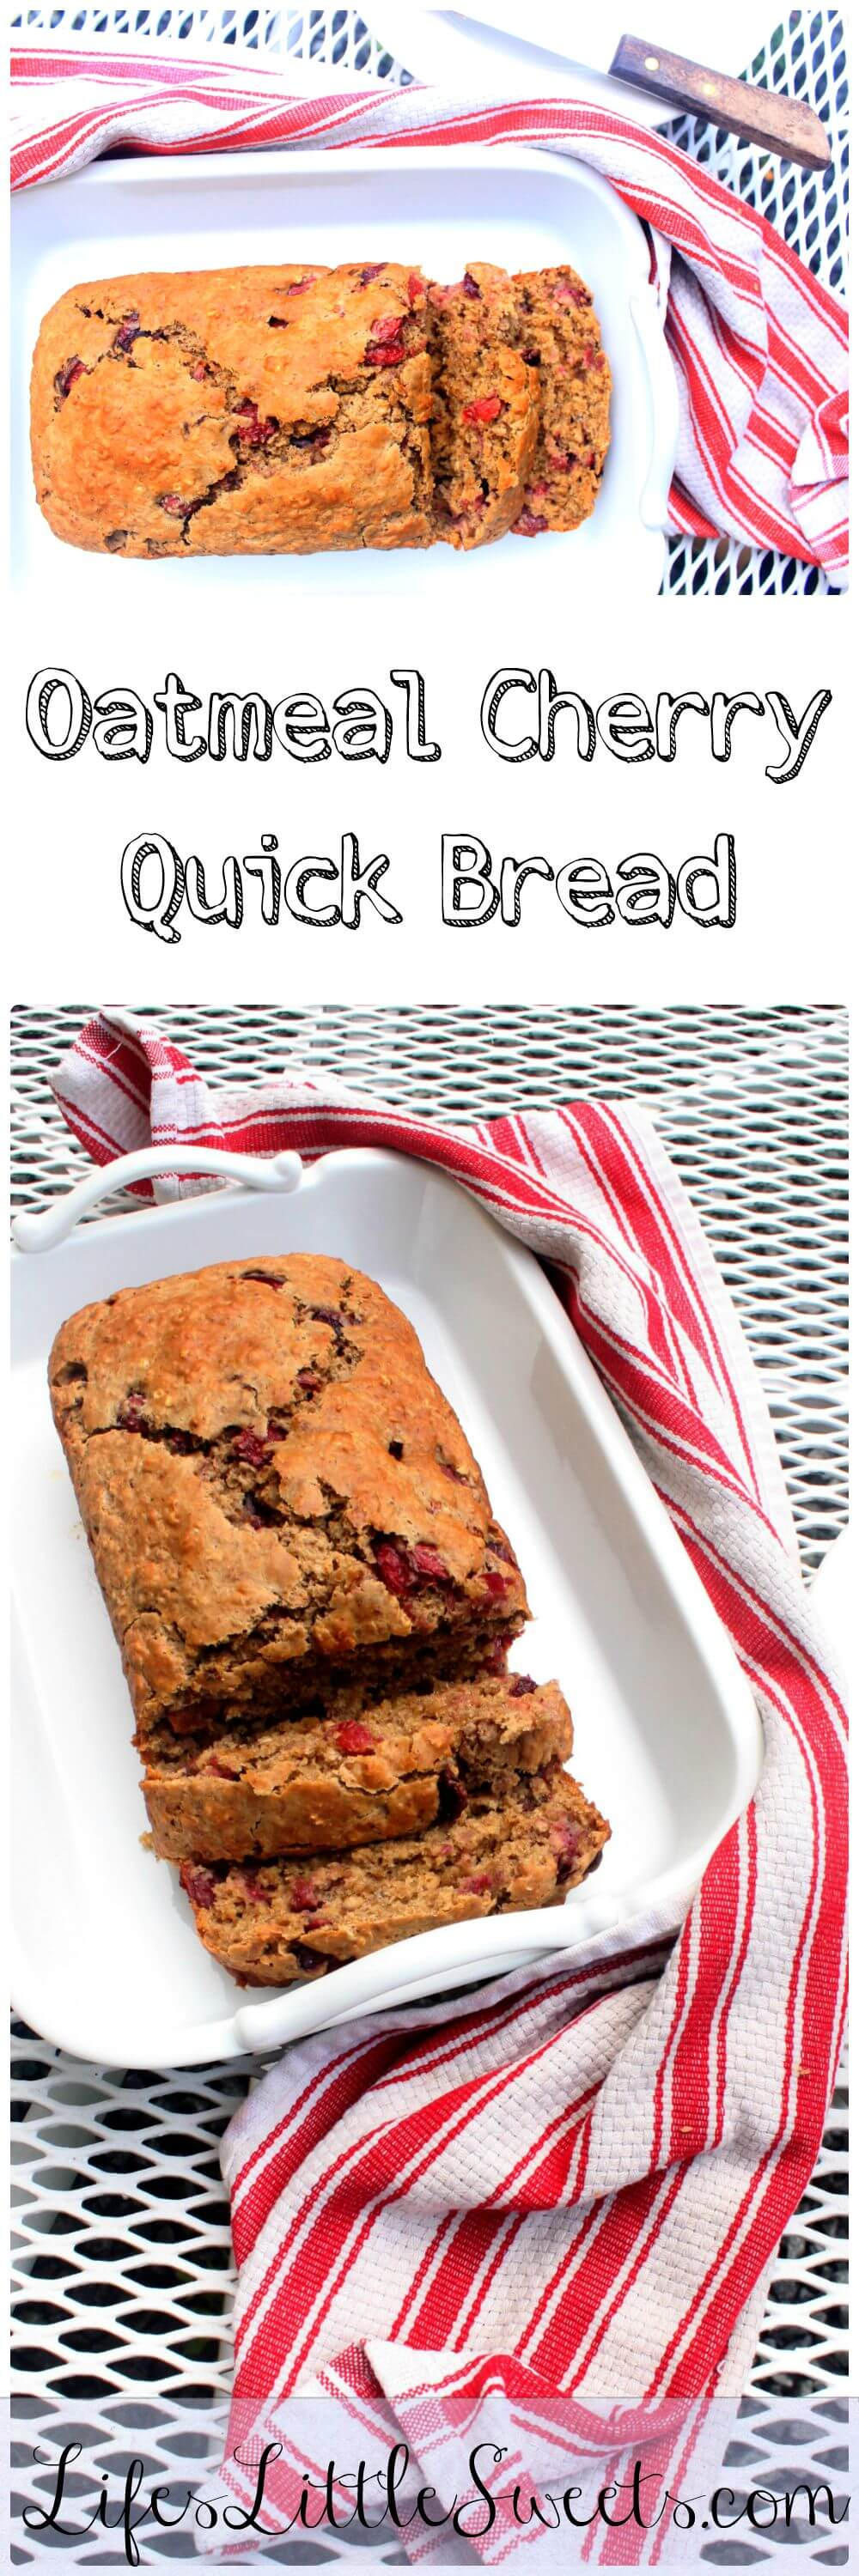 Oatmeal Cherry Quick Bread Healthy Cherries Egg Free